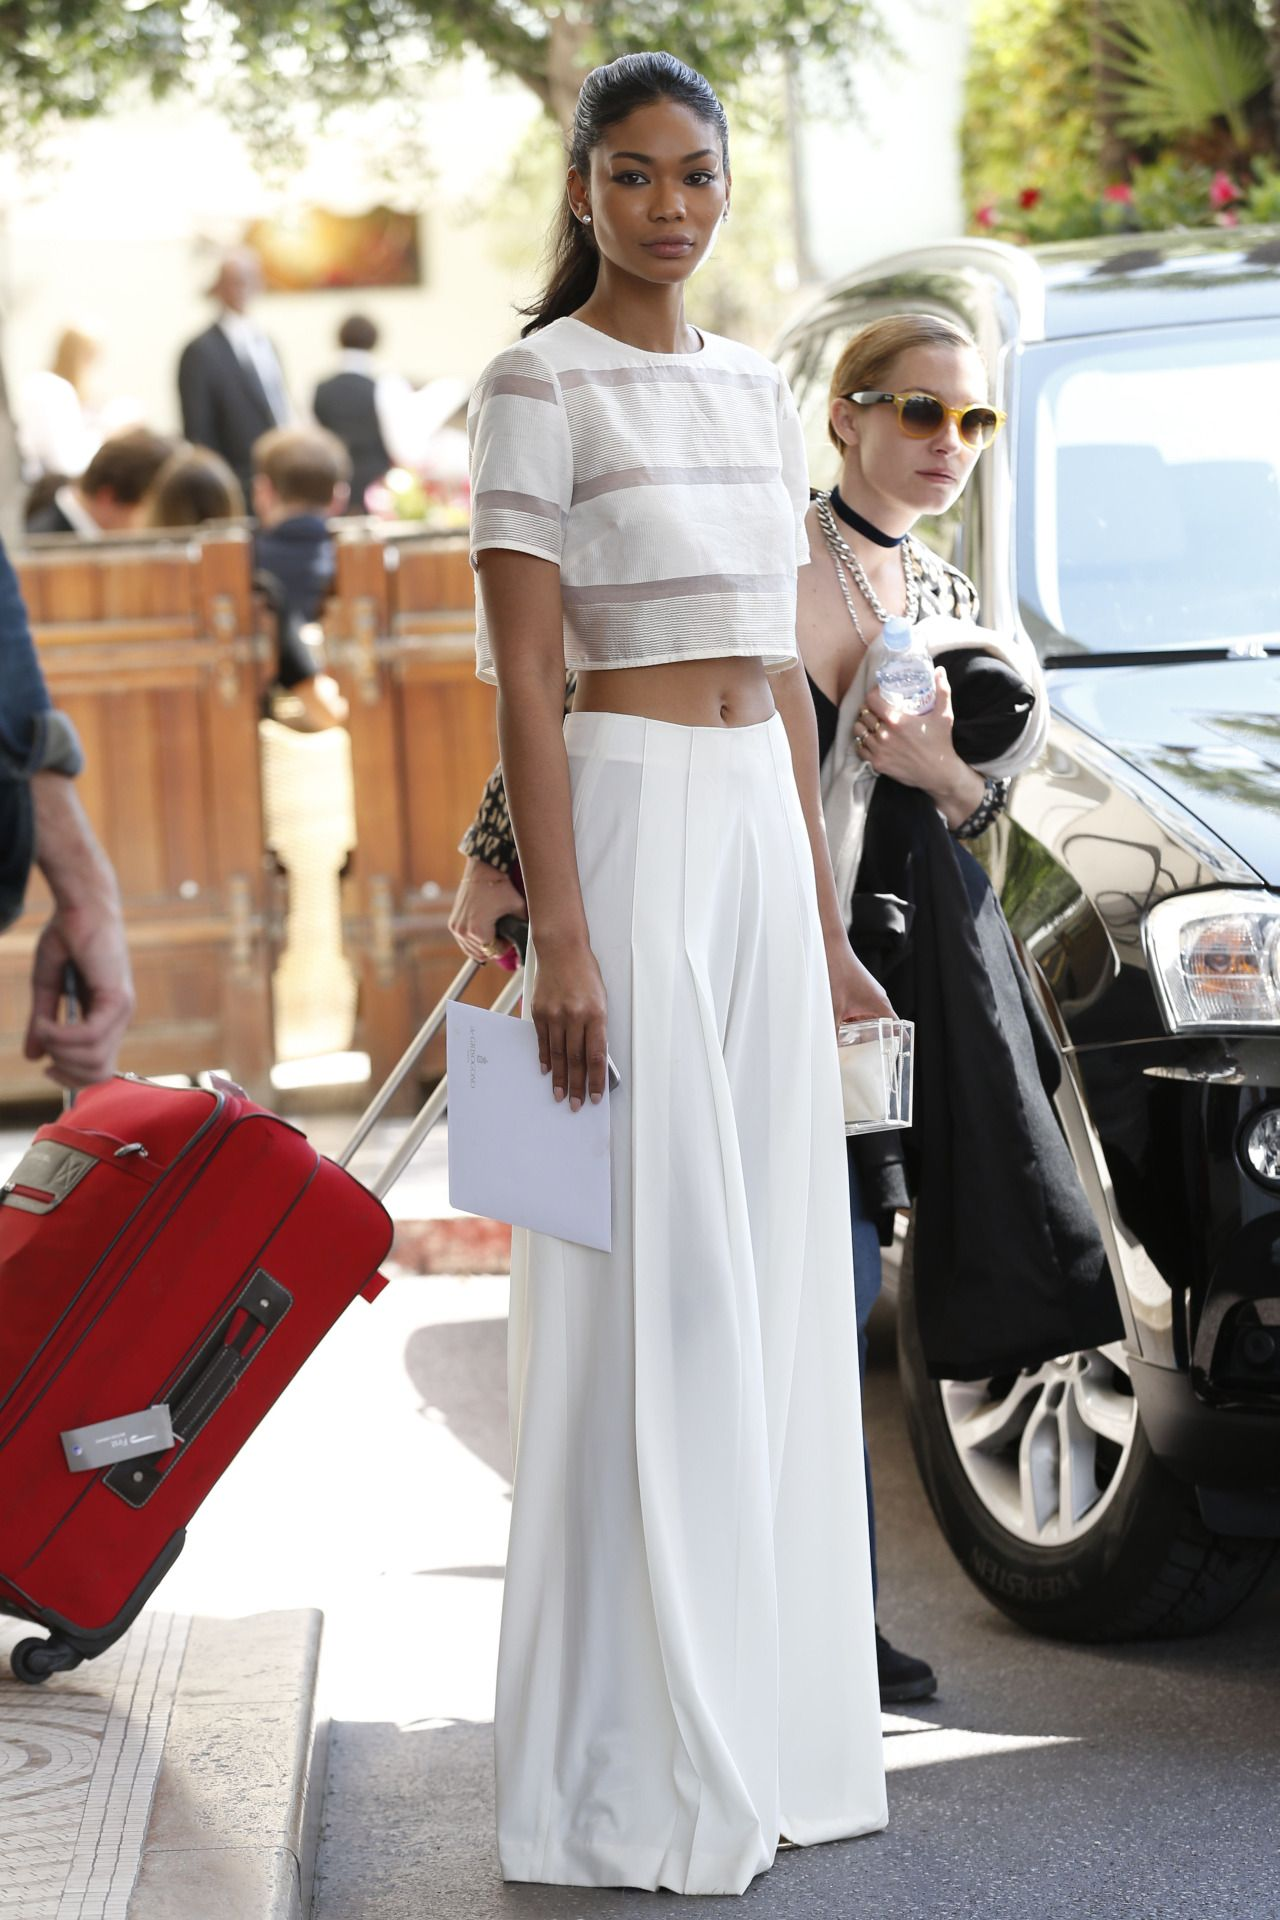 Celebritiesofcolor Chanel Iman Martinez Hotel In